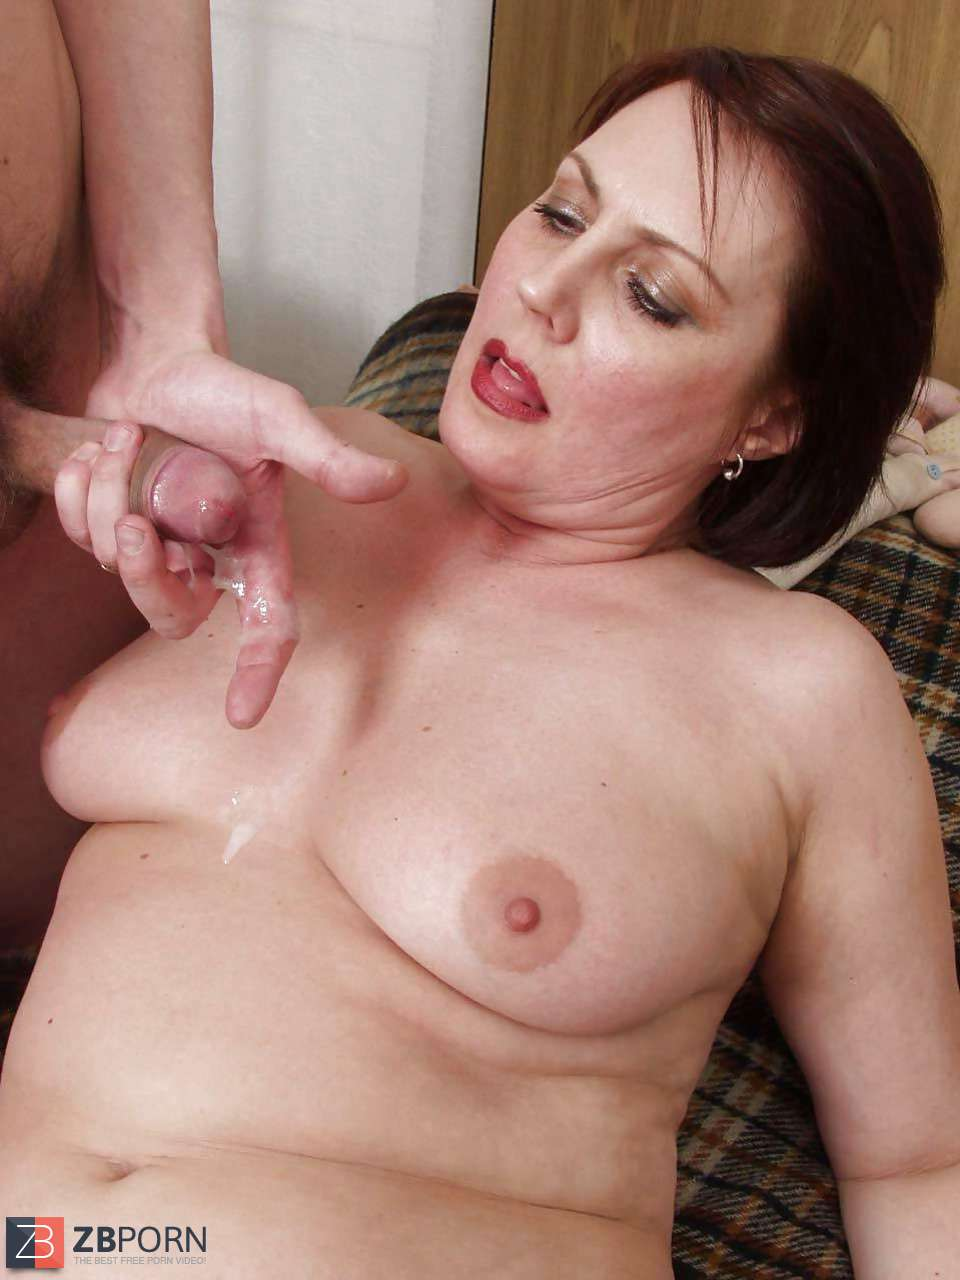 Hd Porn Pictures Free